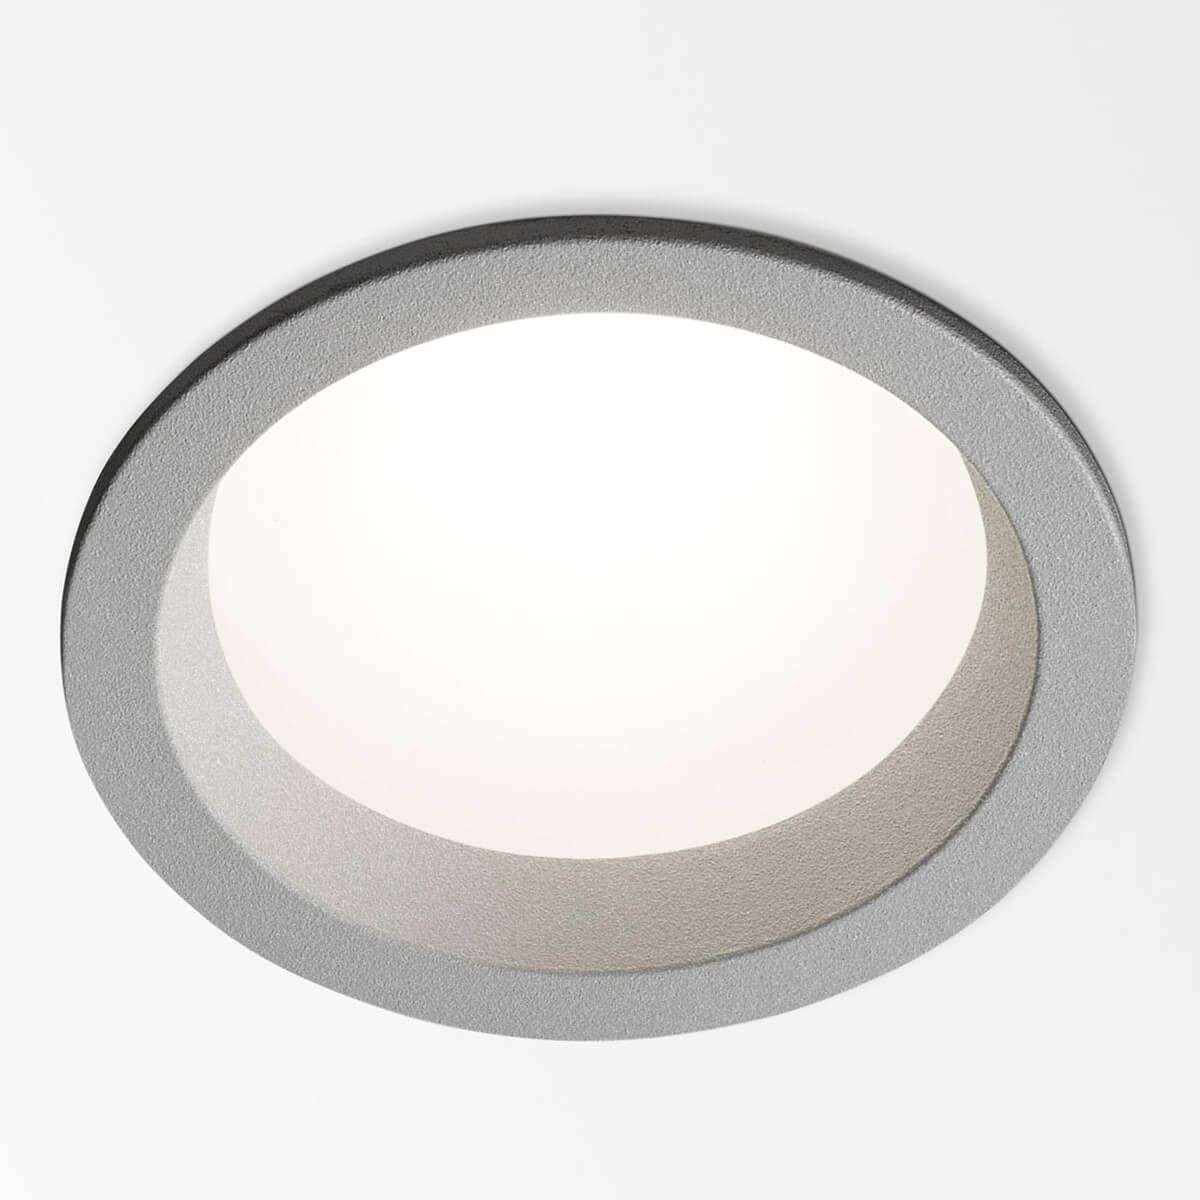 Diro gt led soft bathroom recessed spotlight lights diro gt led soft bathroom recessed spotlight 2520114 31 aloadofball